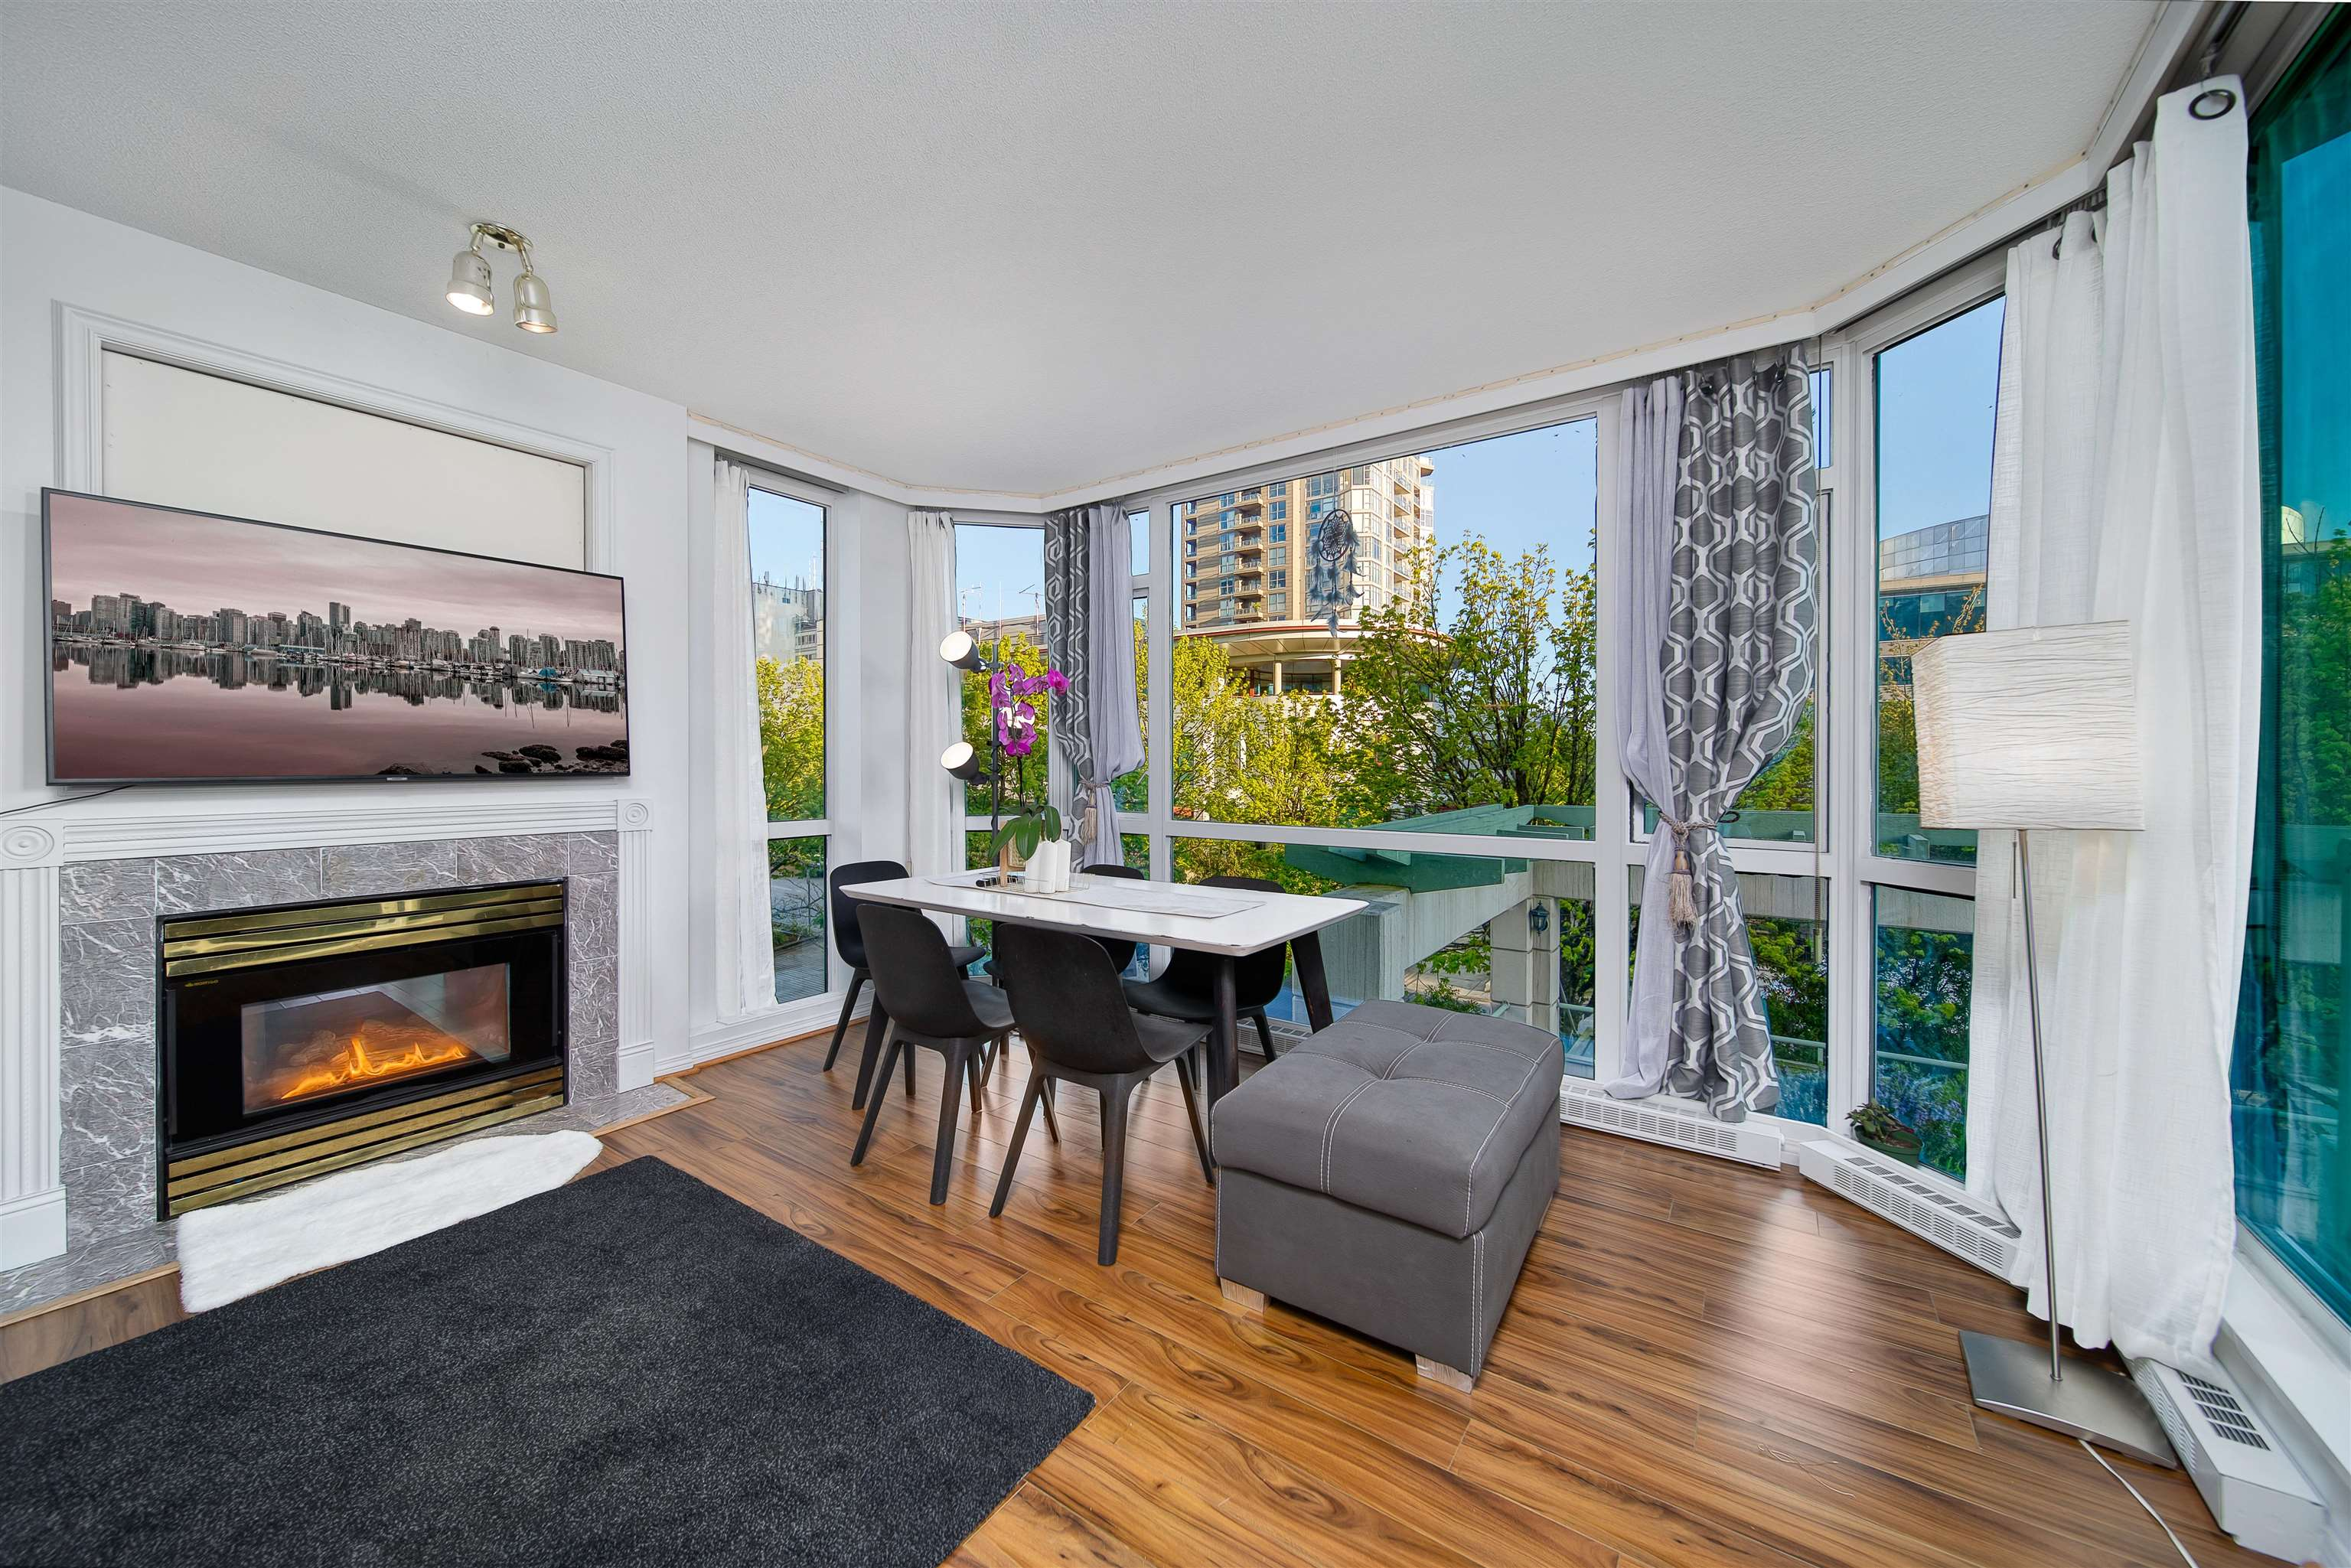 303 140 E 14TH STREET - Central Lonsdale Apartment/Condo for sale, 1 Bedroom (R2618094) - #6